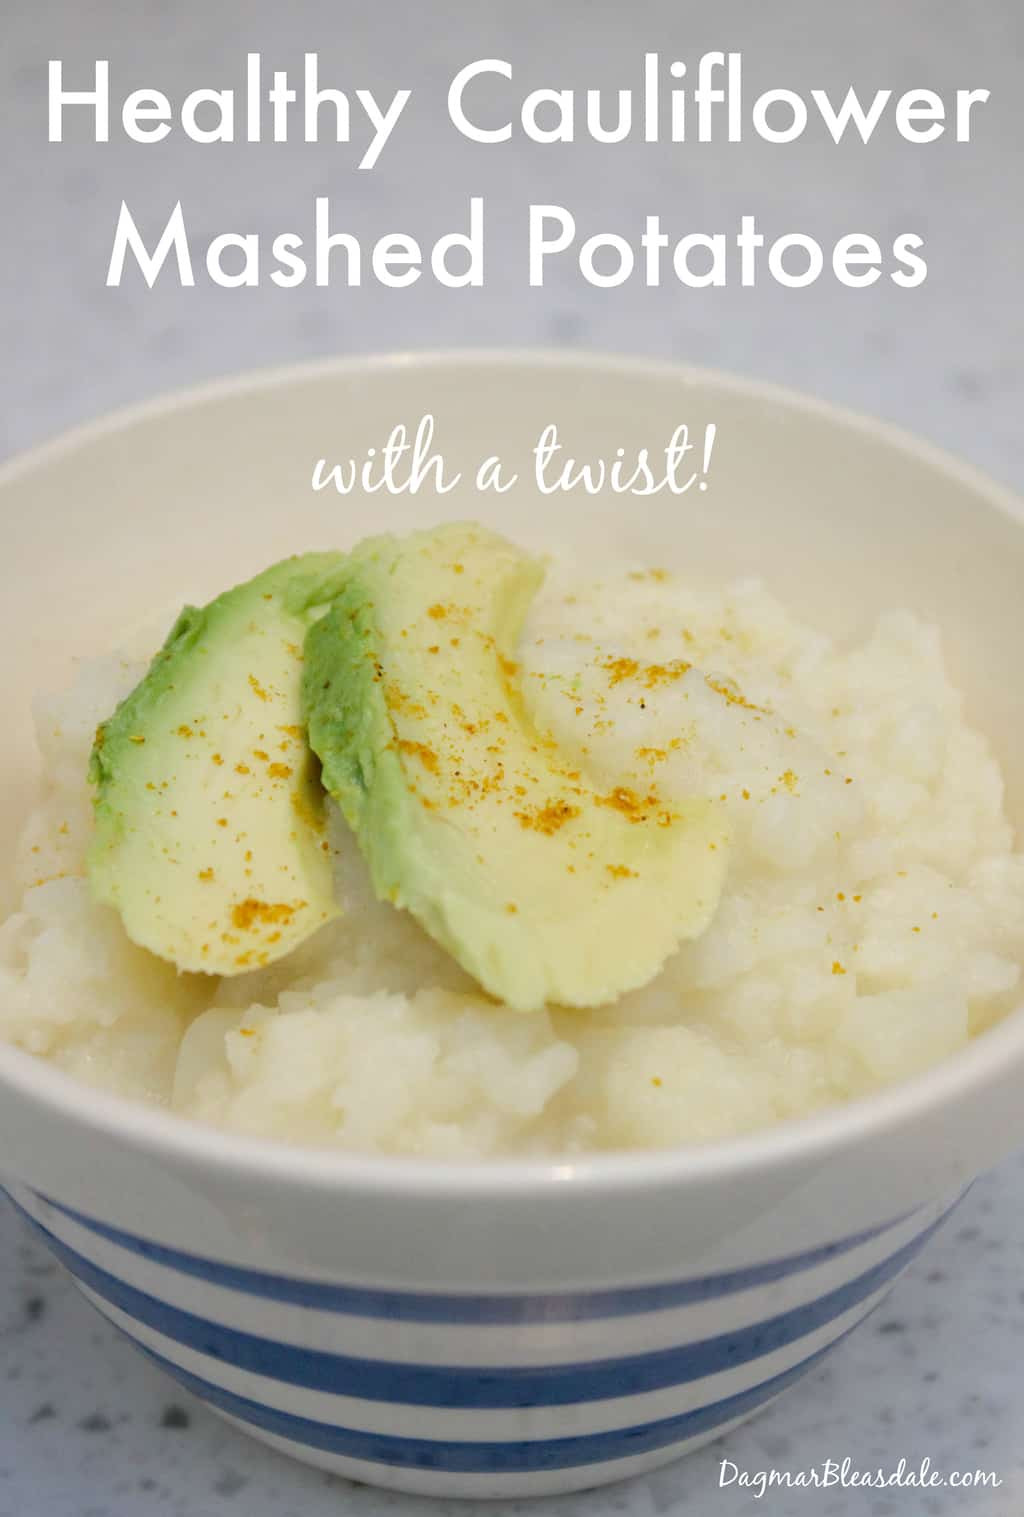 Are Mashed Potatoes Healthy  Healthy Cauliflower Mashed Potatoes Recipe With a Twist